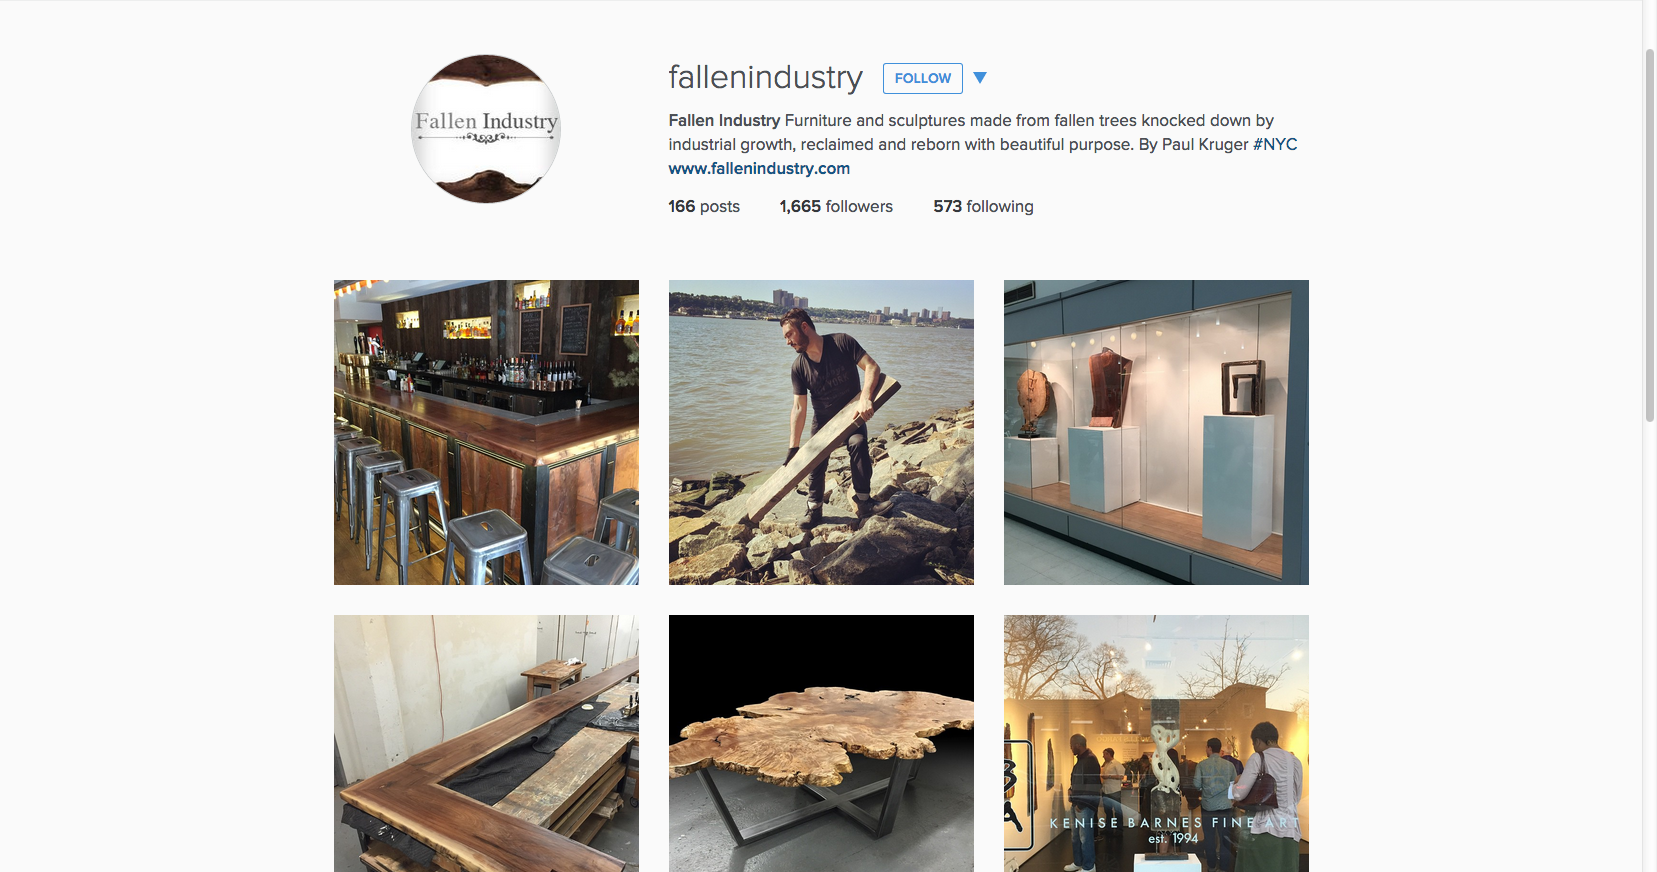 Fallen Industry Instagram